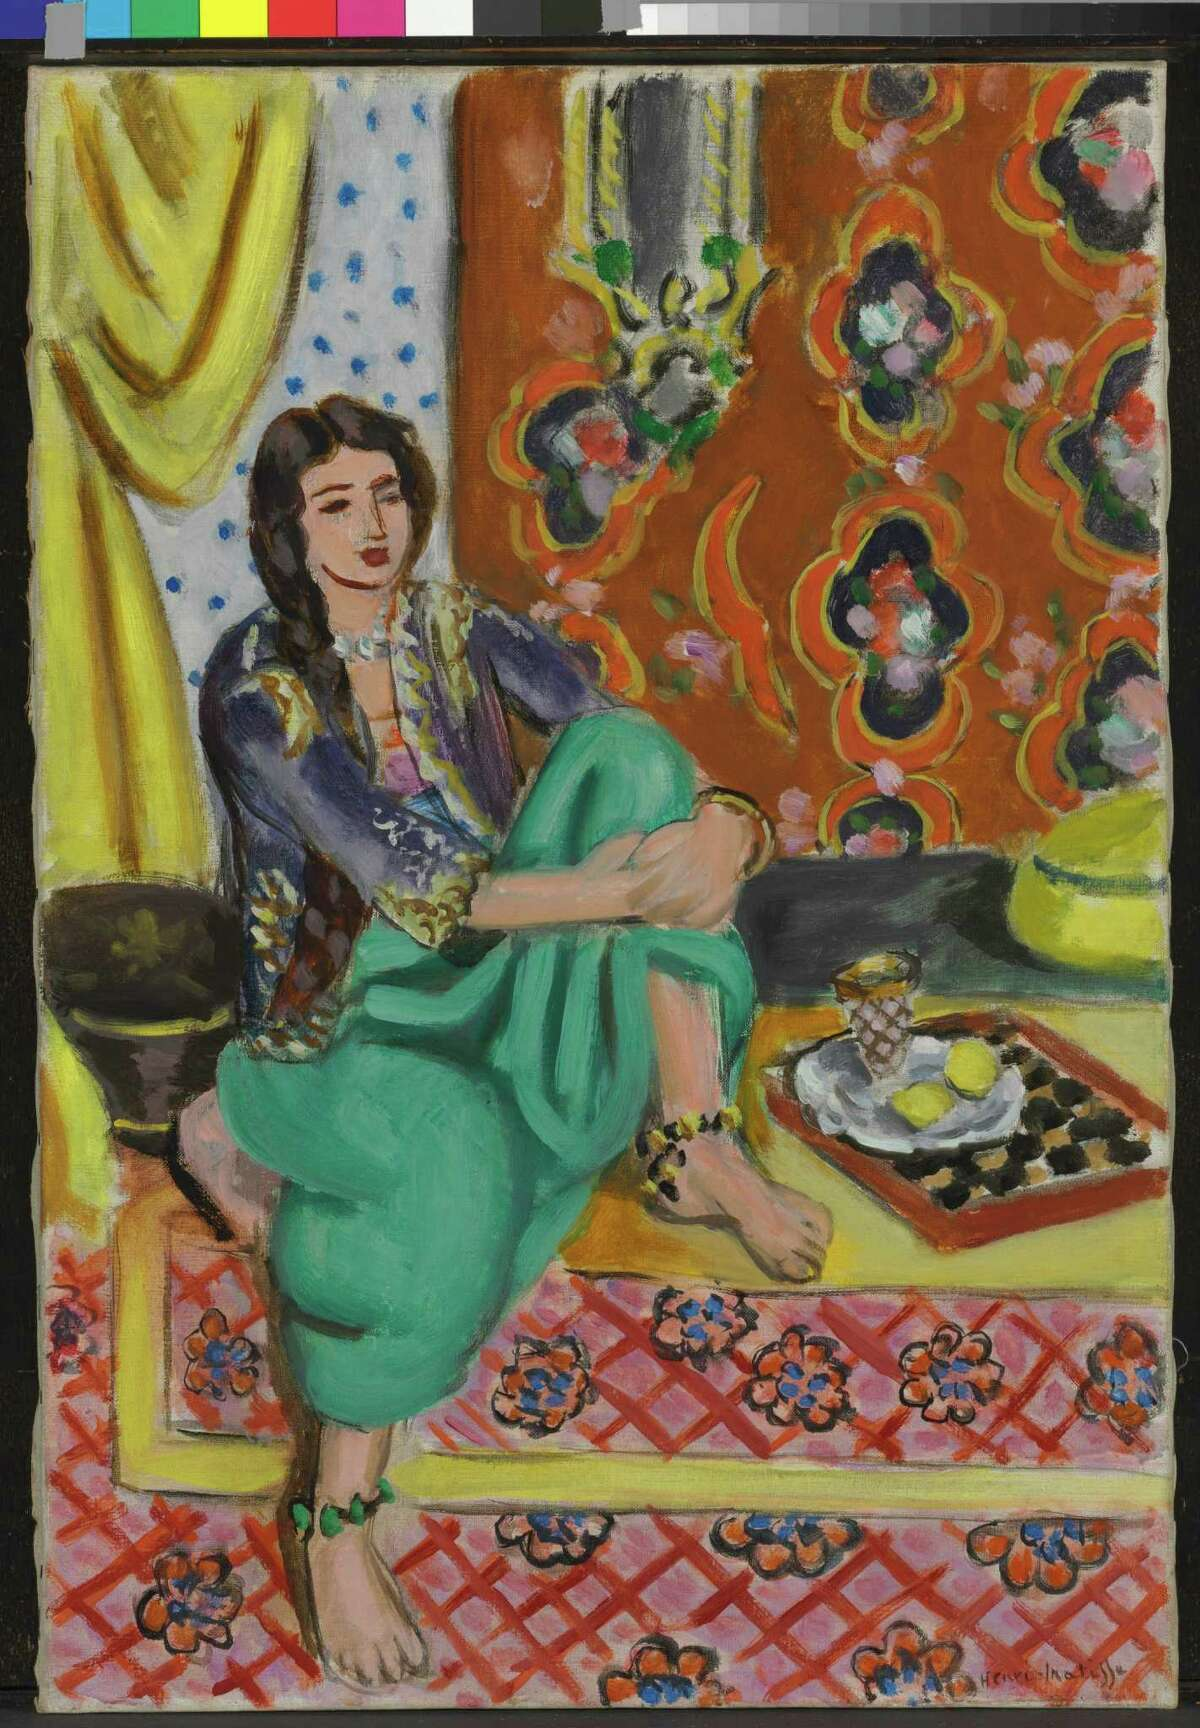 Henri Matisse Bed- and chair-ridden due to abdominal cancer, Matisse began making his famous cutouts at age 72.